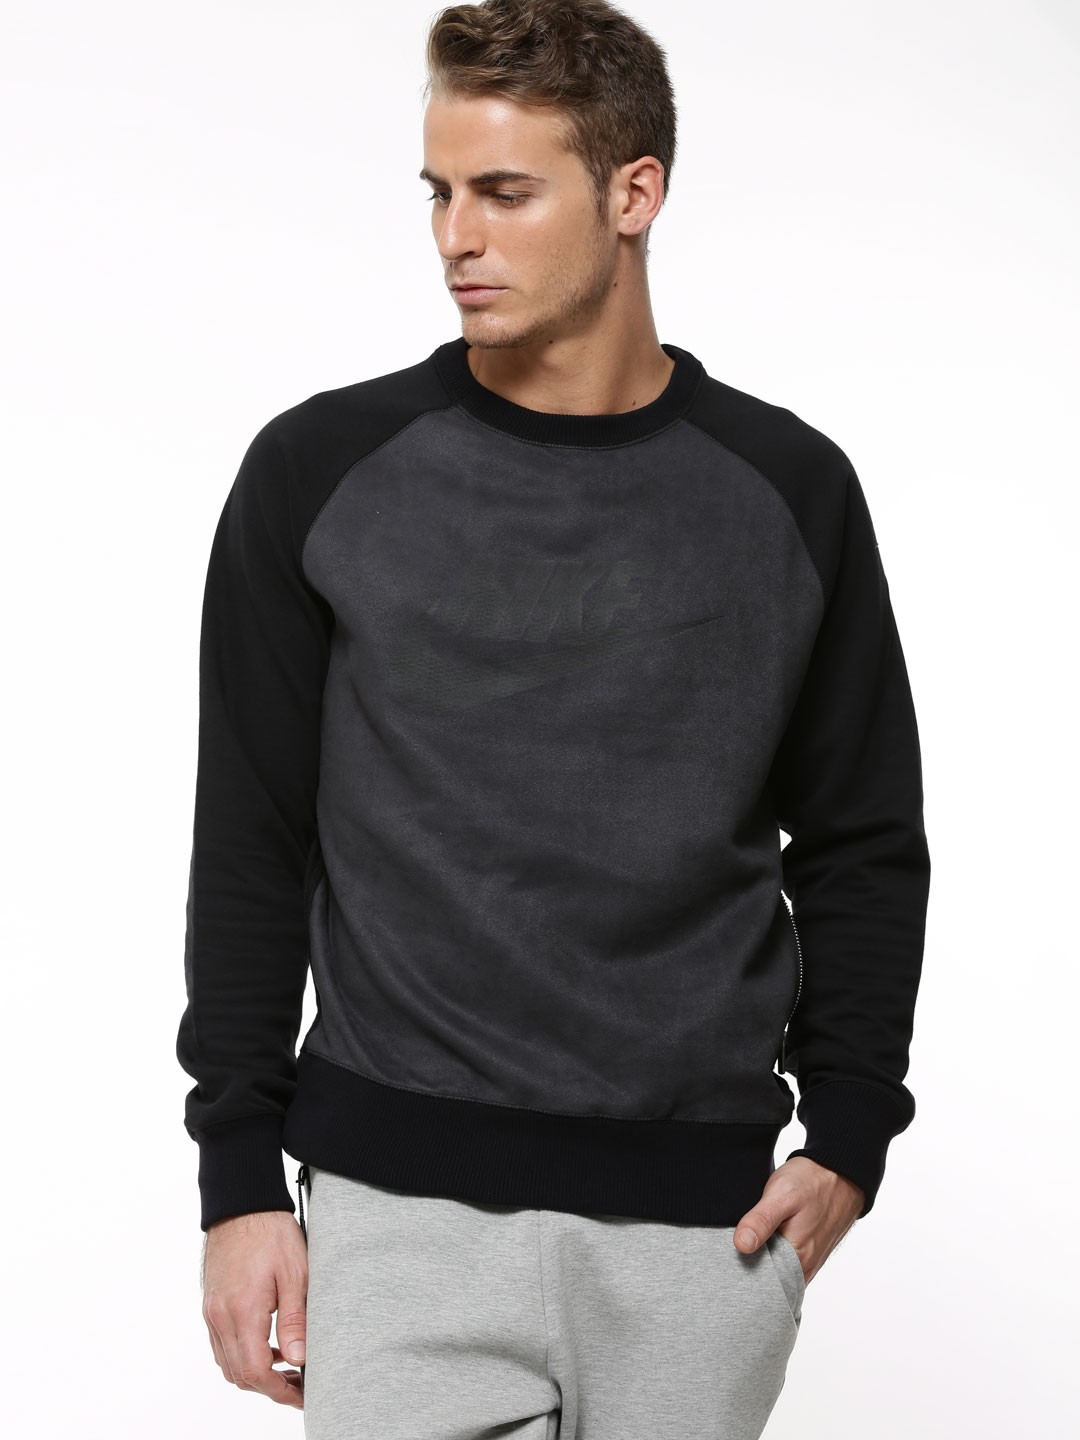 buy nike aw77 cristiano ronaldo sweatshirt for men men 39 s. Black Bedroom Furniture Sets. Home Design Ideas